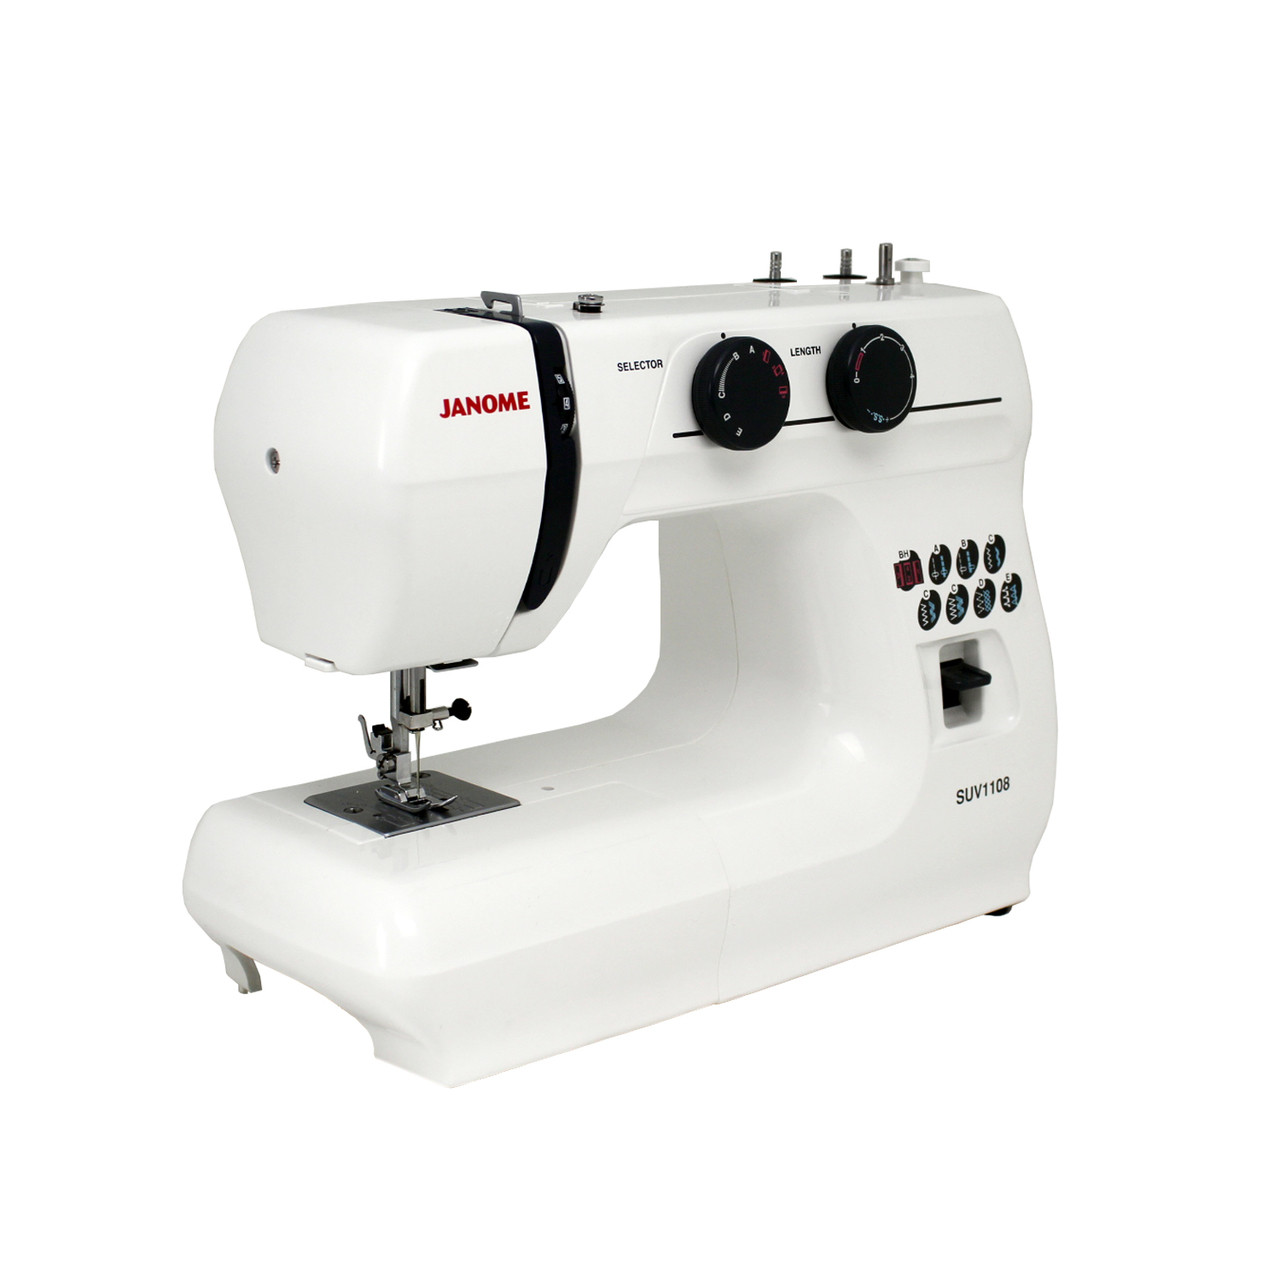 Janome SUV1108 Sewing Machine with Bonus Bundle $189.00 - FREE ...